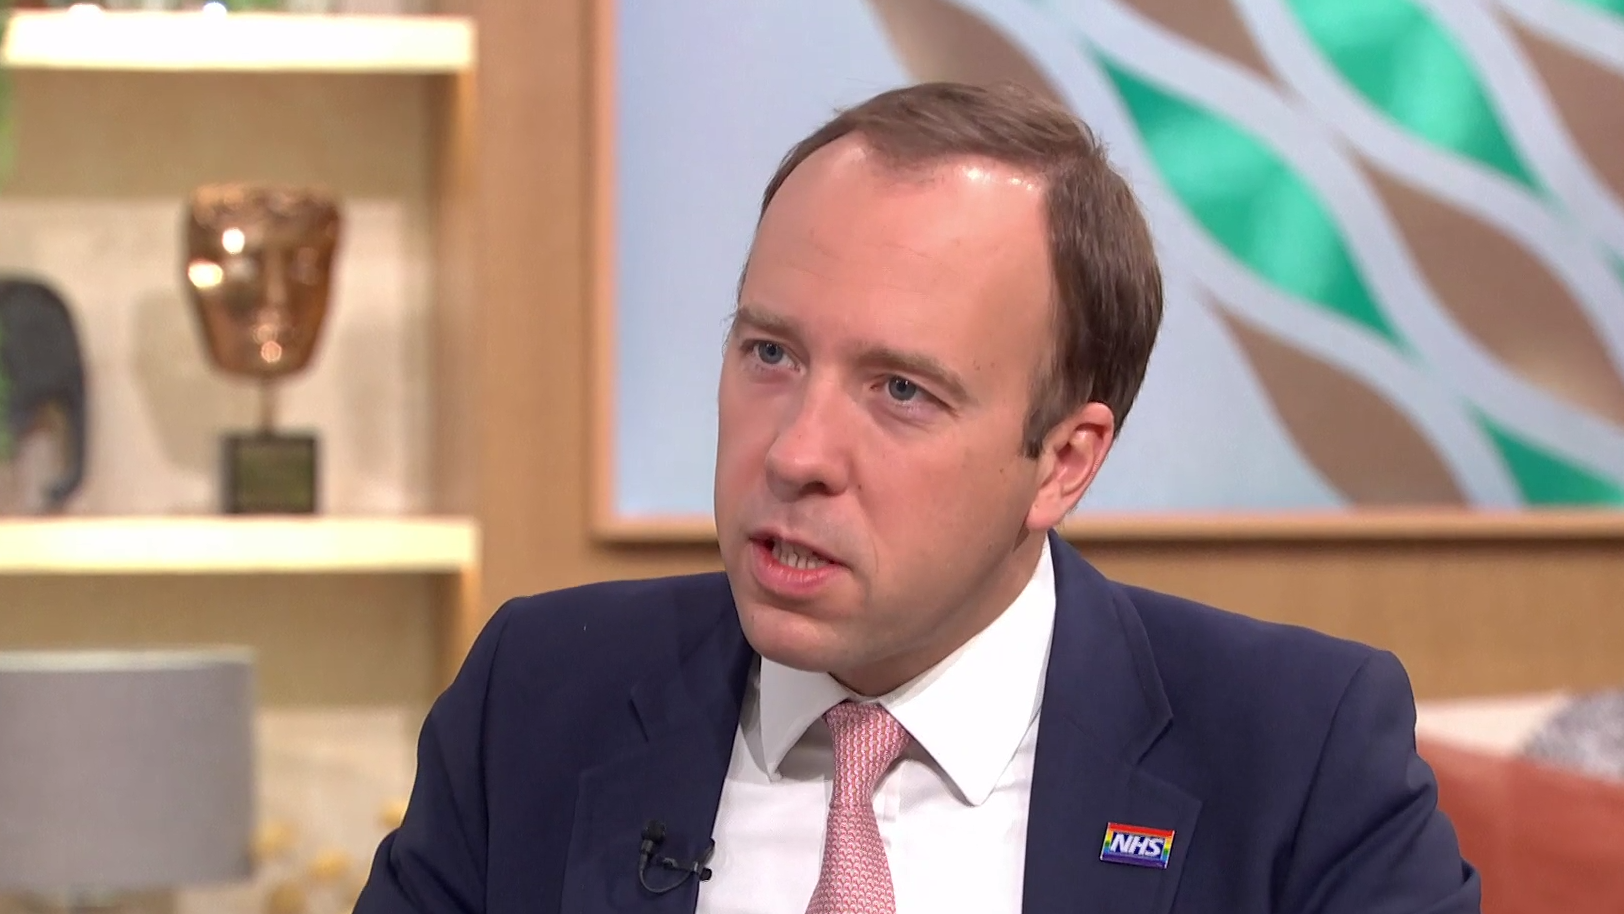 Matt Hancock won't rule out second UK lockdown | This Morning